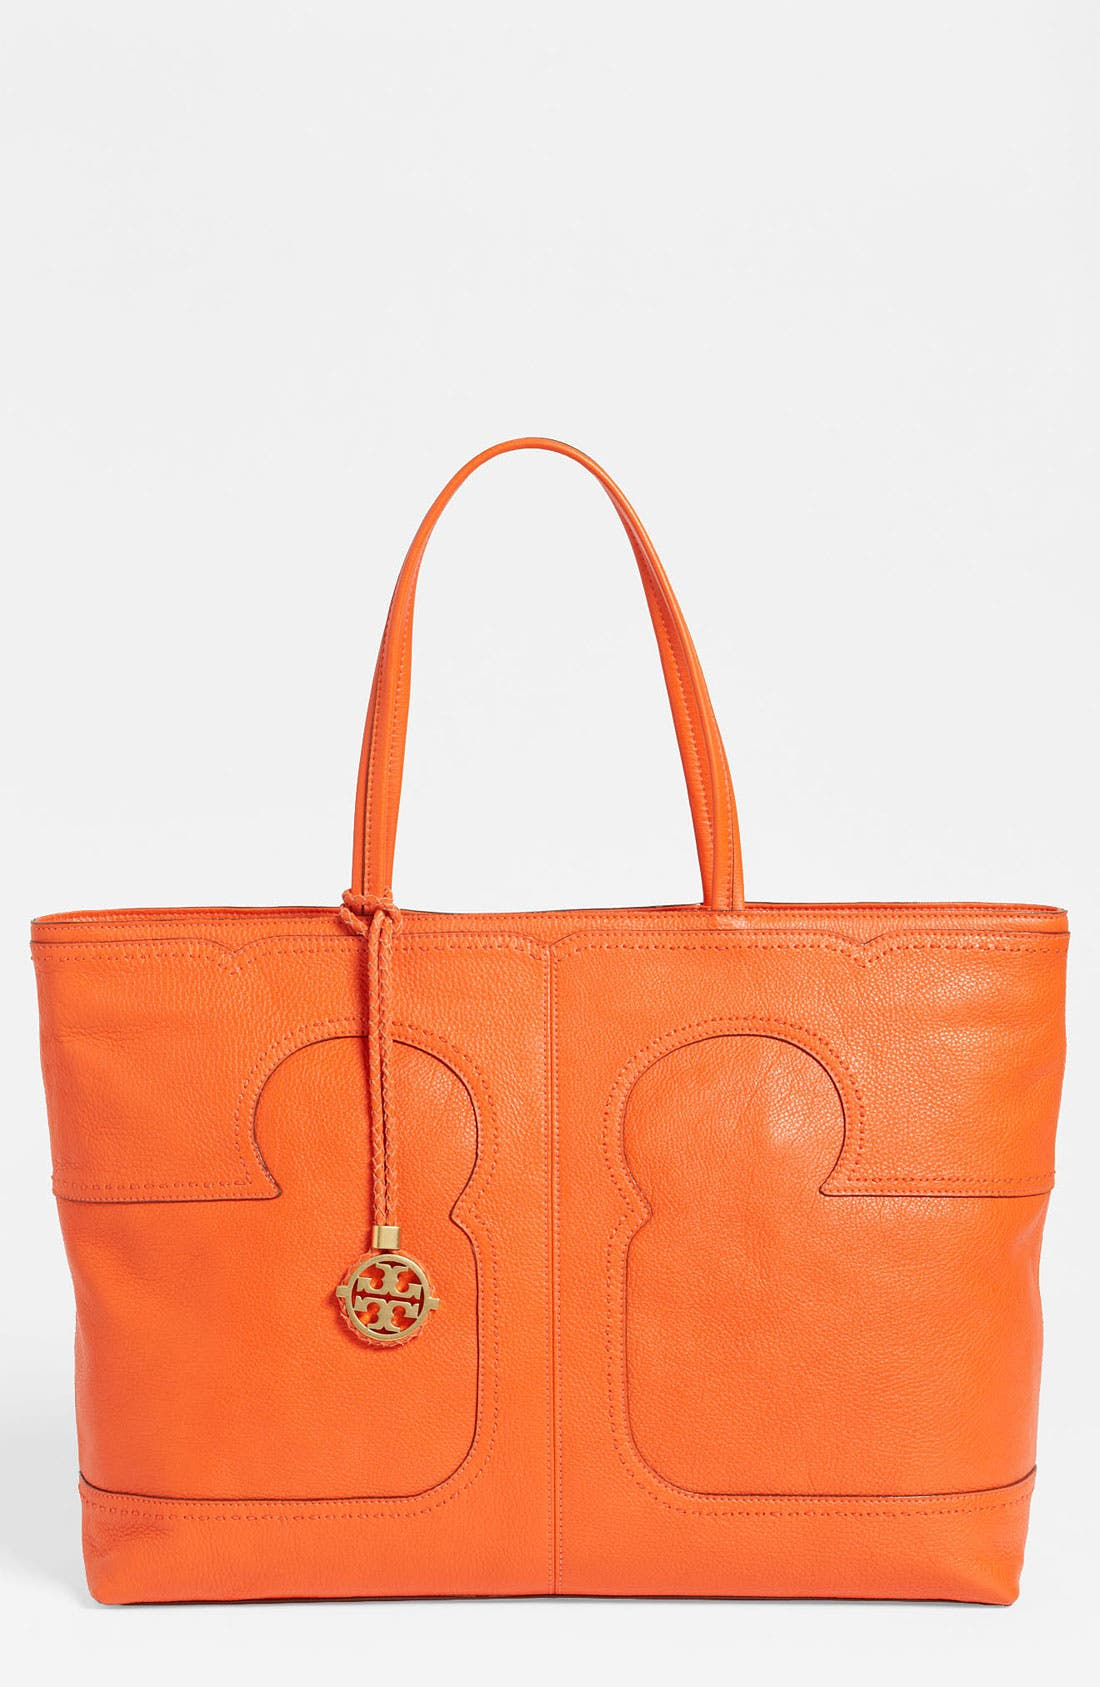 Main Image - Tory Burch 'Amalie' Leather Tote